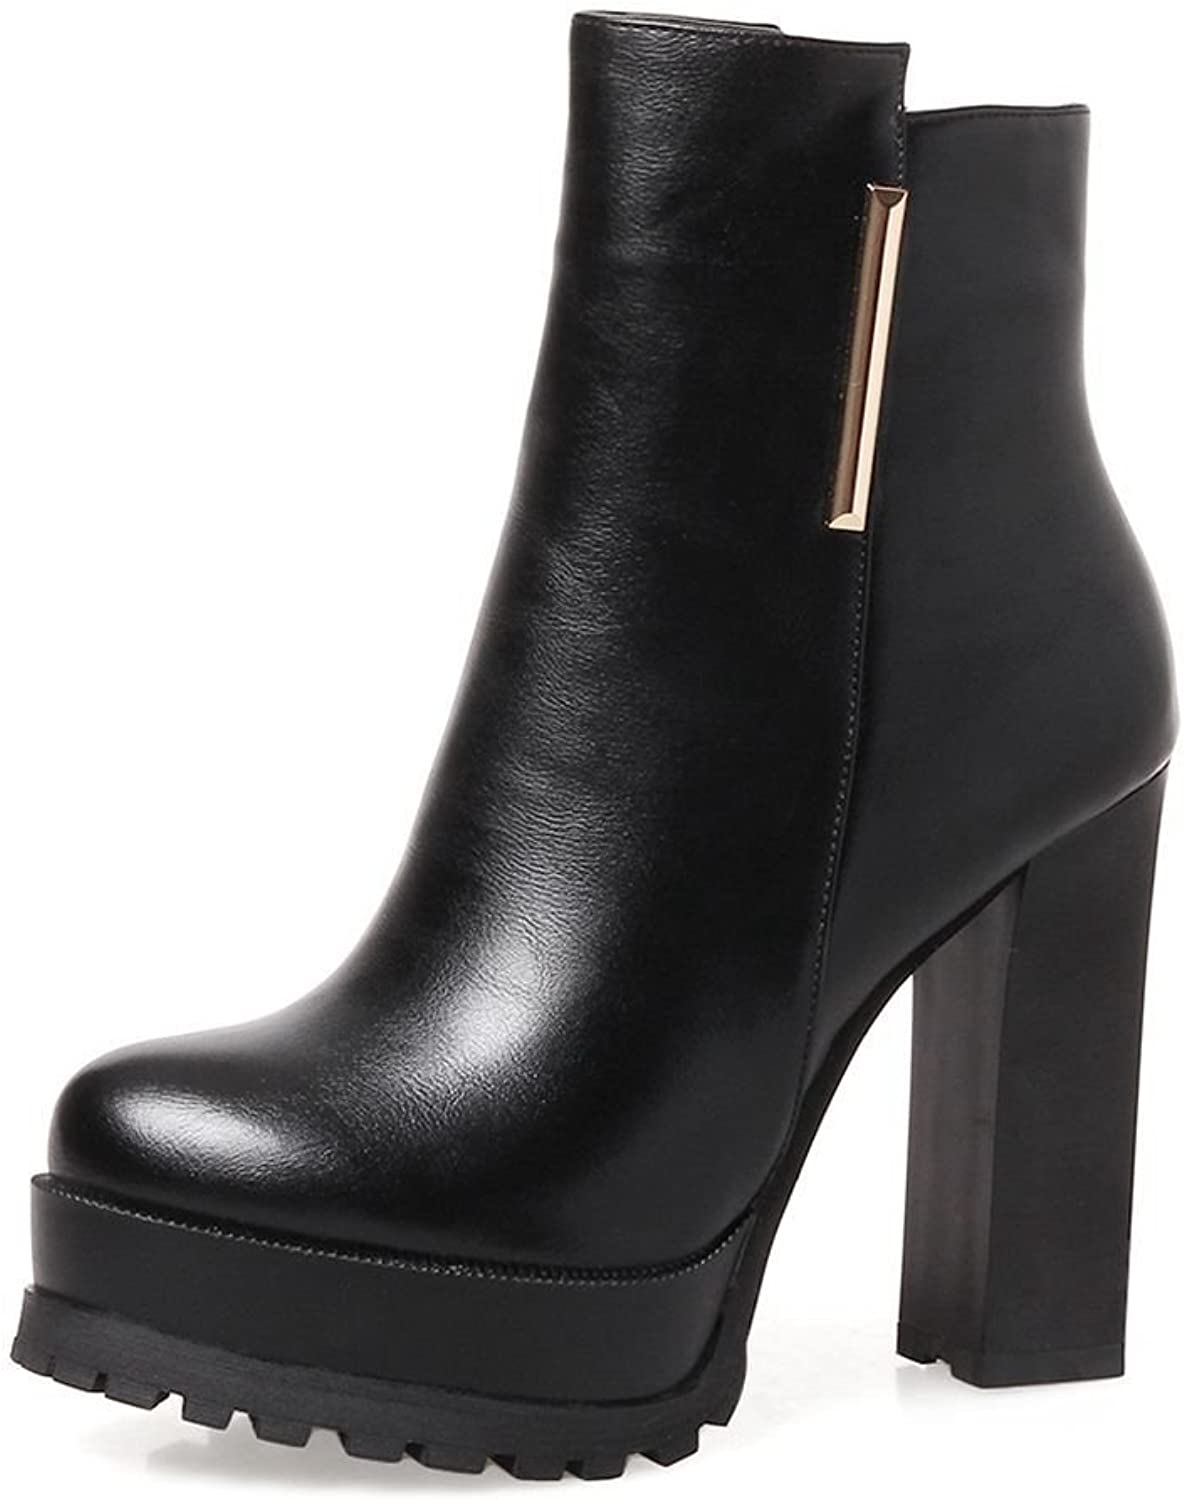 SaraIris Ankle Boots with Platform Chunky Heels Concise for Women